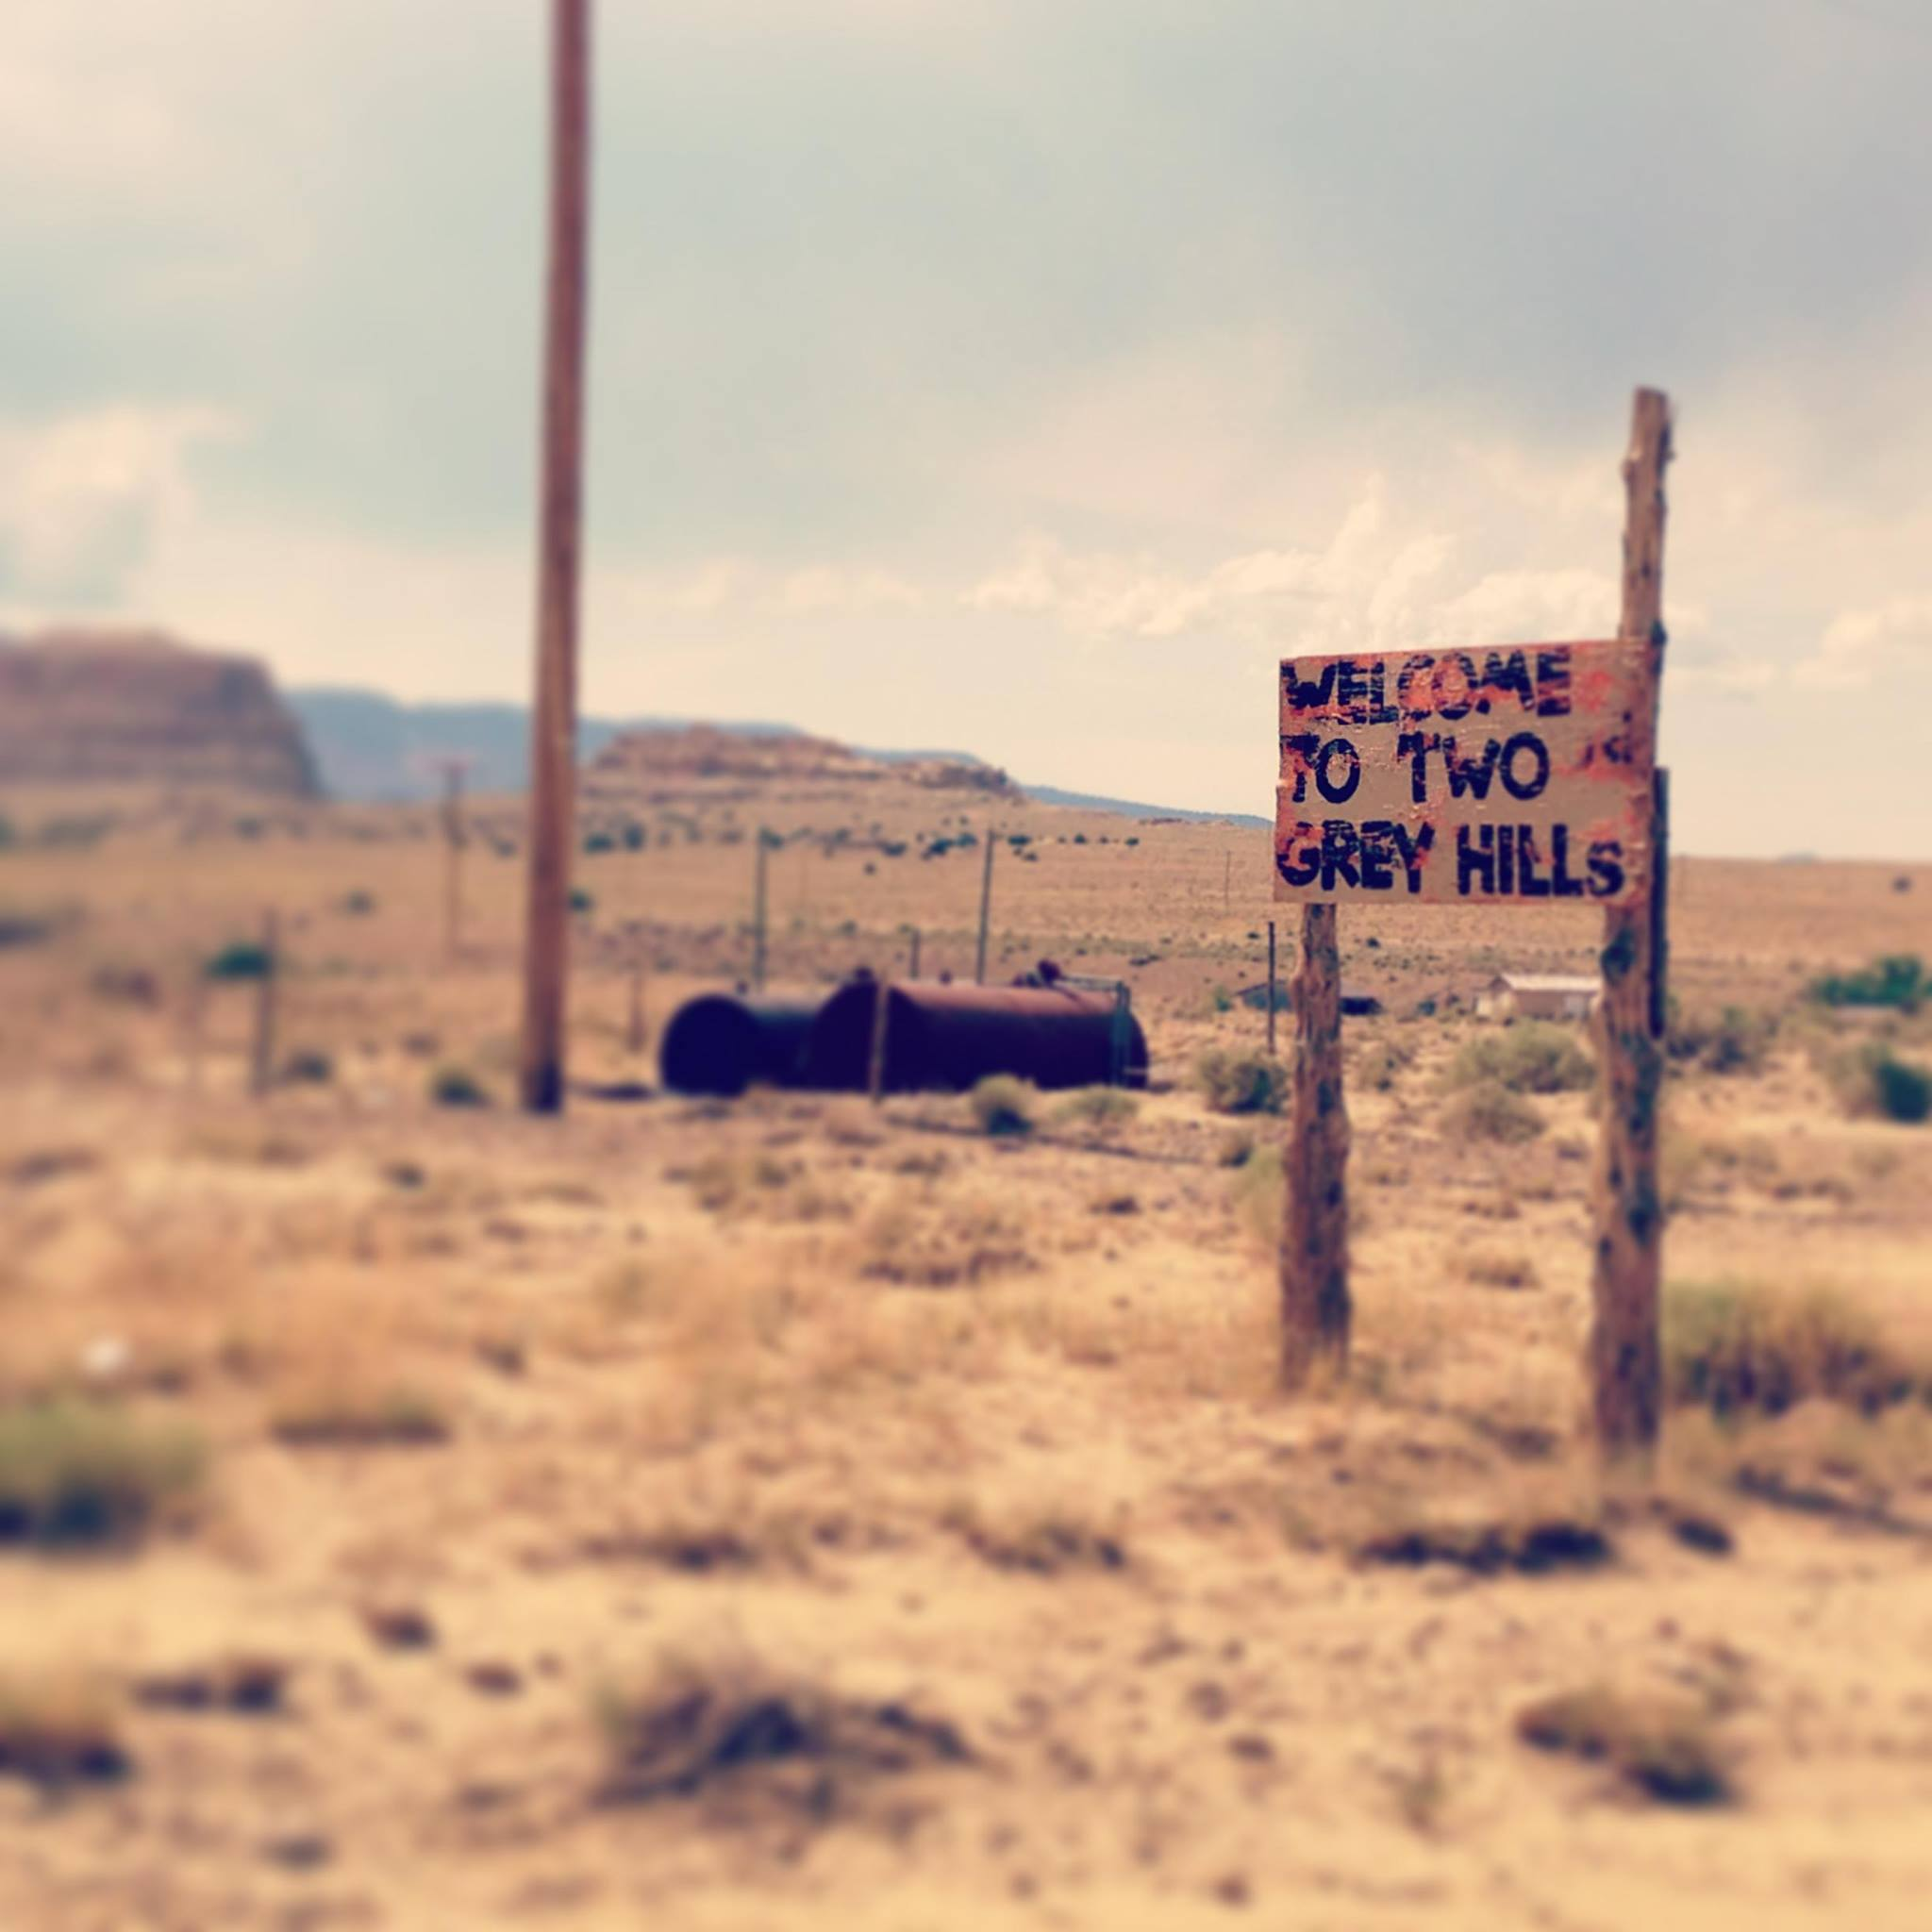 two grey hills and welcome sign